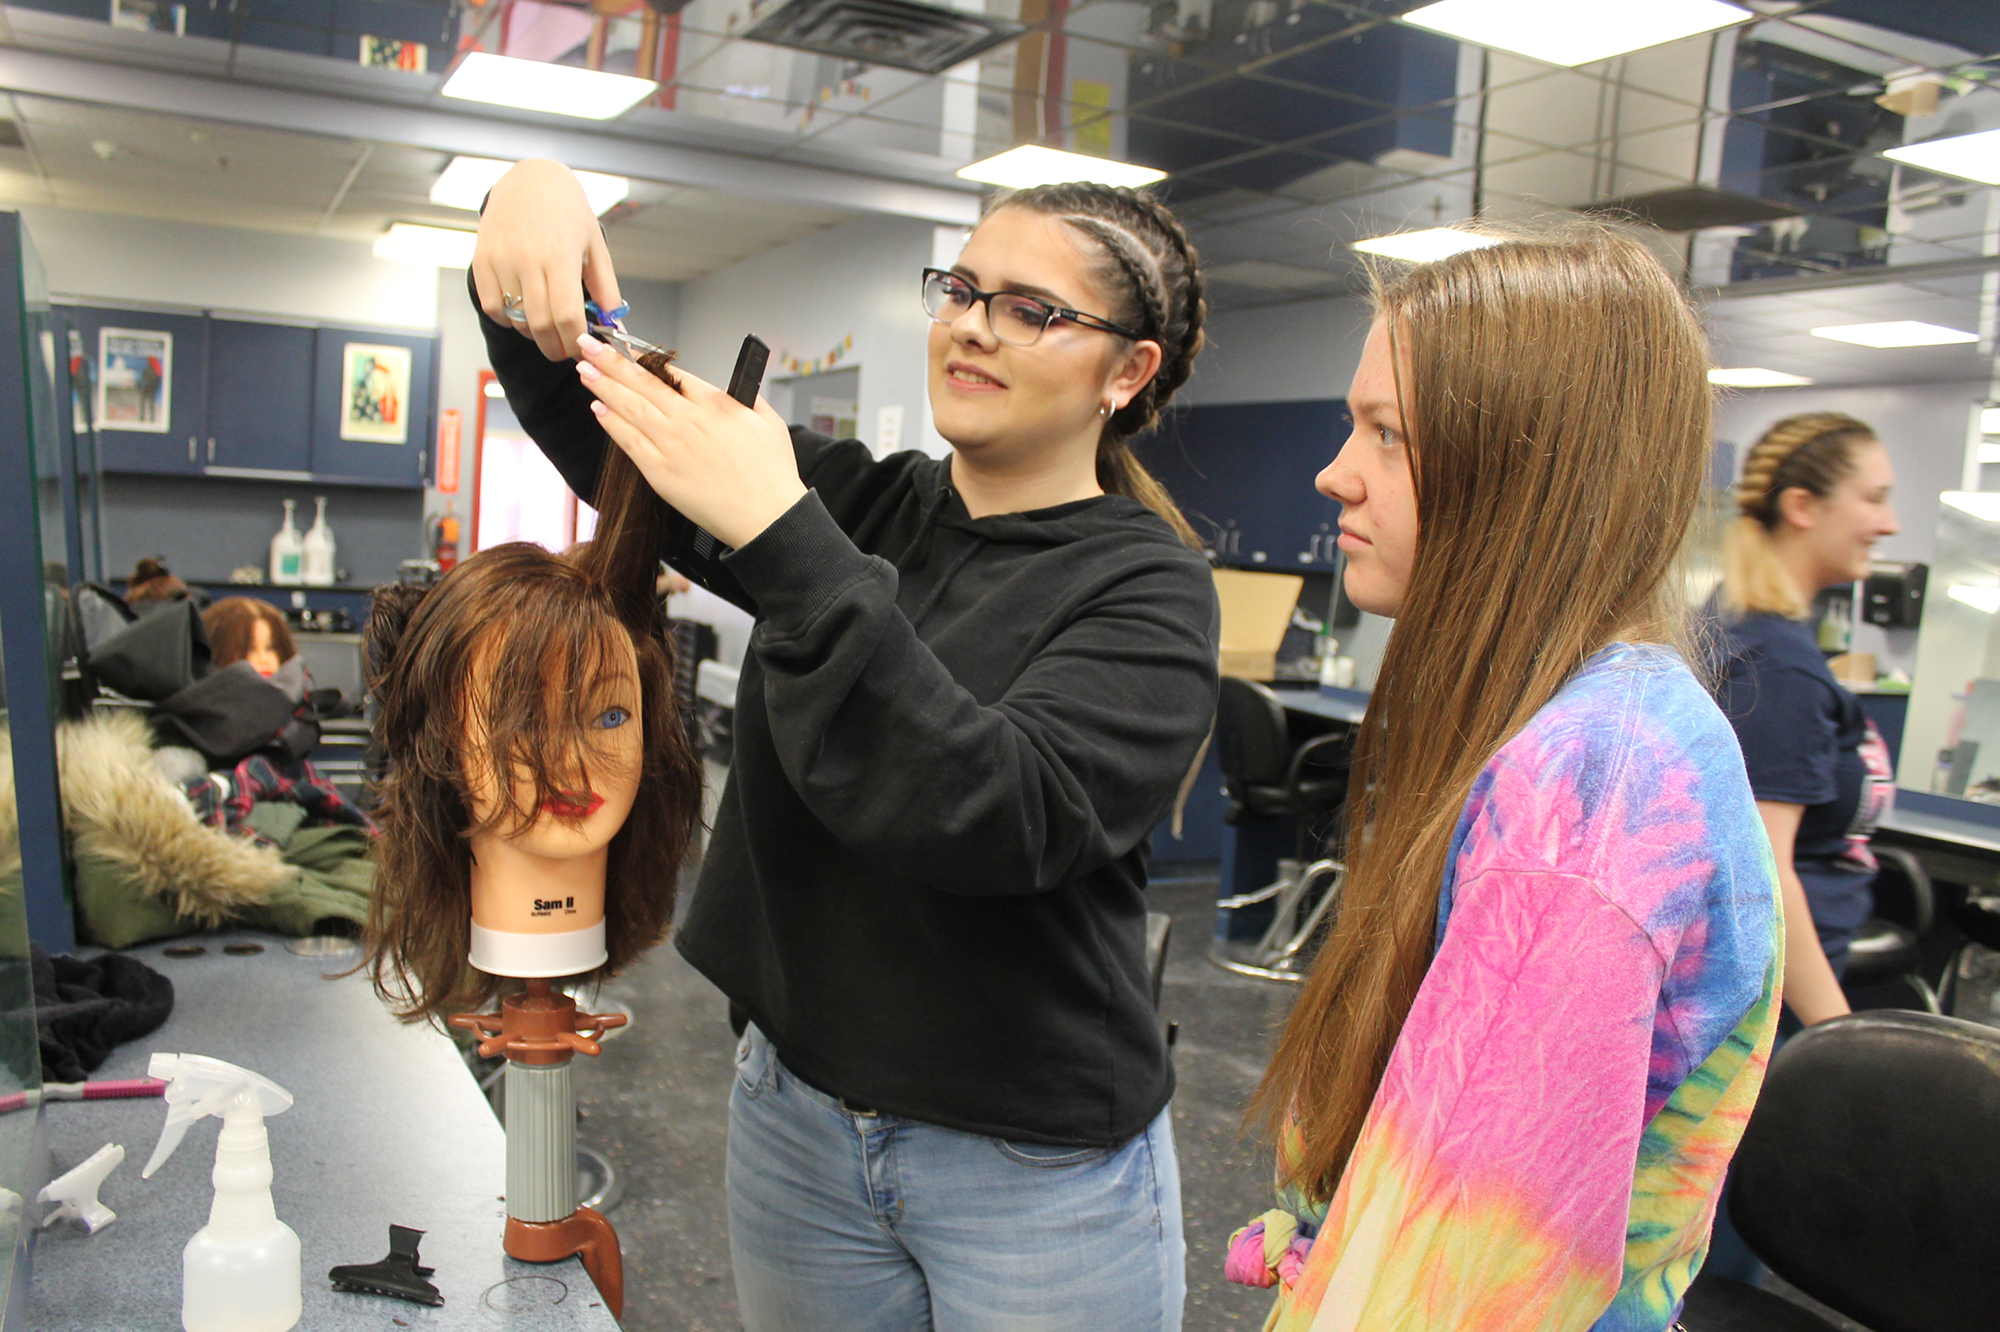 A Highland High School student observes a Cosmetology student demonstrate hair-cutting techniques.